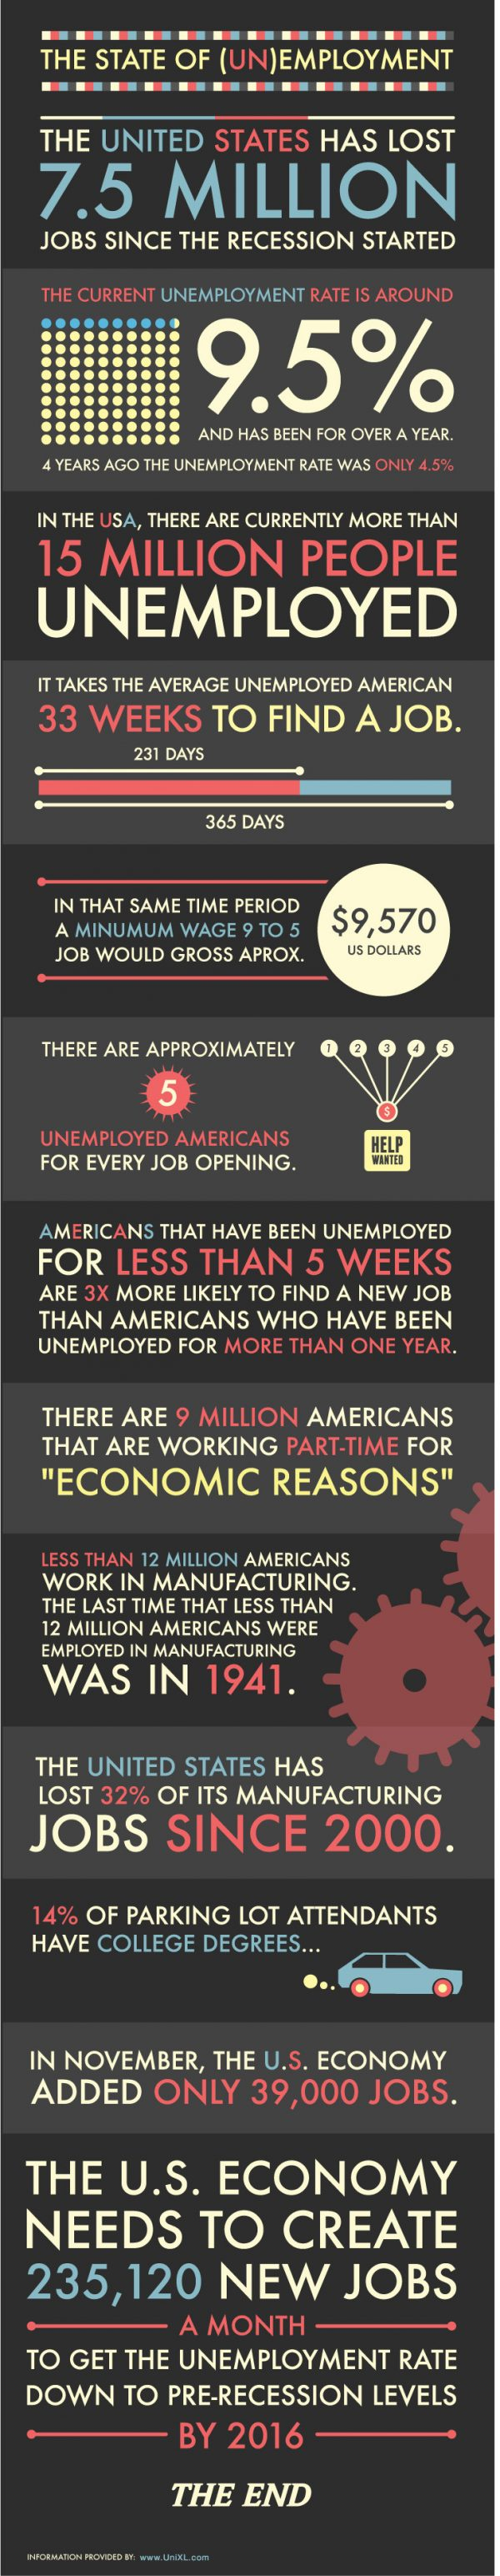 The State of Unemployment (Infographic)